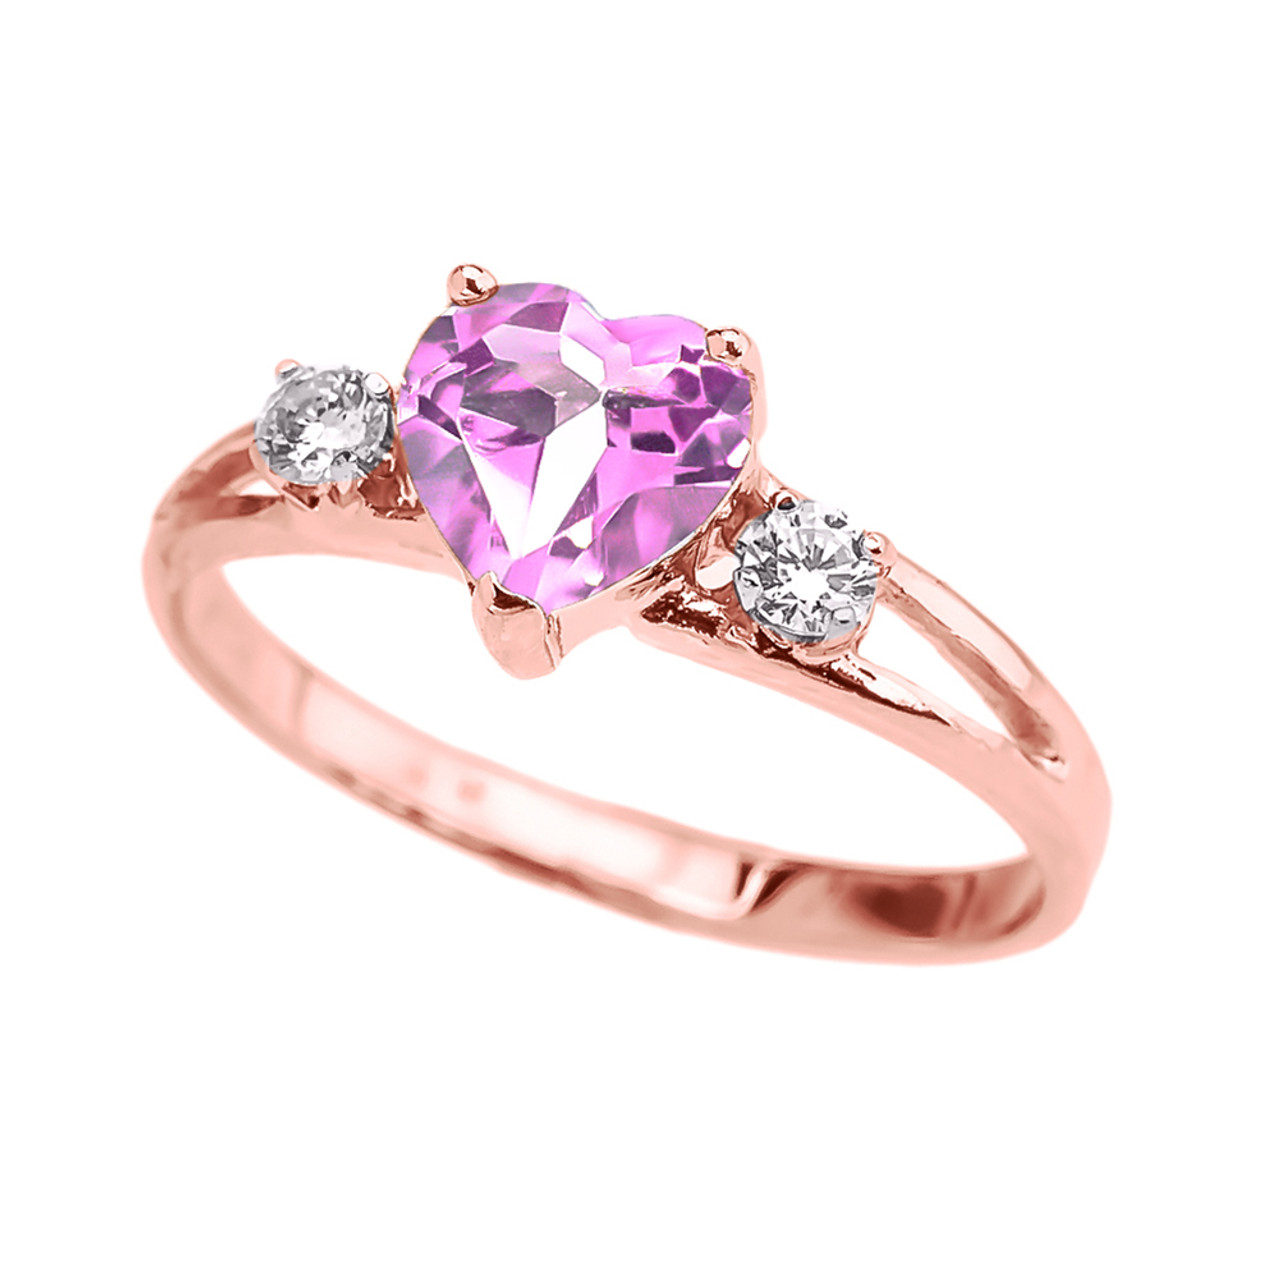 ring pink elegance jewel crown heart princess zircon ora cubic rings lo jewelry with wedding